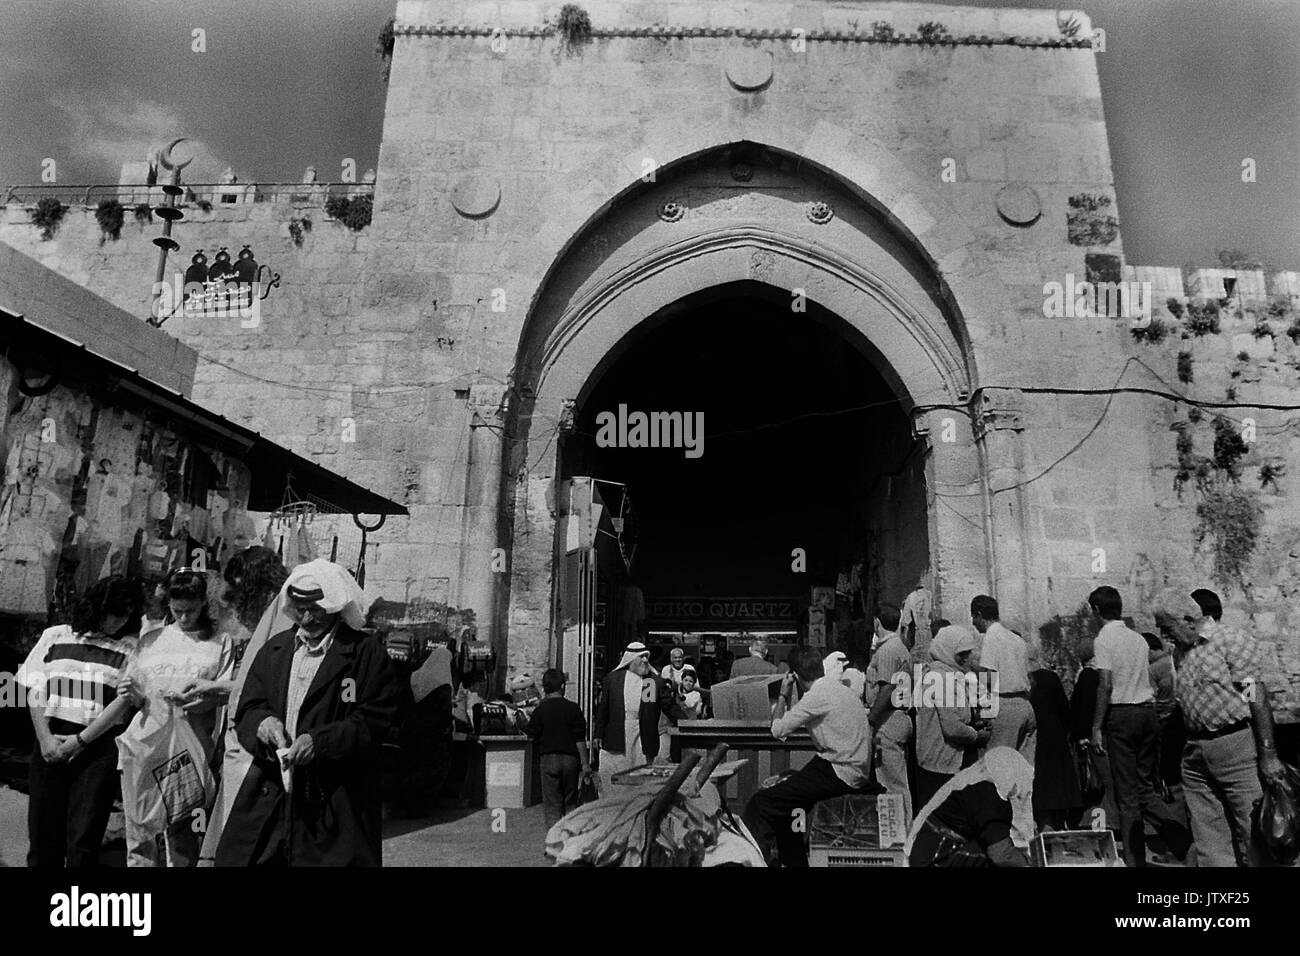 Damascus Gate pictured 1990 ( Bab el-Amud), (Sha'ar Sh'khem) is one of the main entrances to the Old City of Jerusalem. The gate was re-built in 1537 by the Sultan Suleiman the Magnificent, ruler of the Ottoman Empire. Beneath the current gate an earlier gate can be seen dating to the time of the Roman Empire. The Arab-Israeli conflict is a struggle over land, history and religion. It's also a dispute over who owns Jerusalem and its holy sites.  To Jews, Jerusalem, Yerushalayim, is the historical capital of the biblical Israelites. To Muslims, Al Quds or Bayt al-Maqdis is the third holiest si - Stock Image